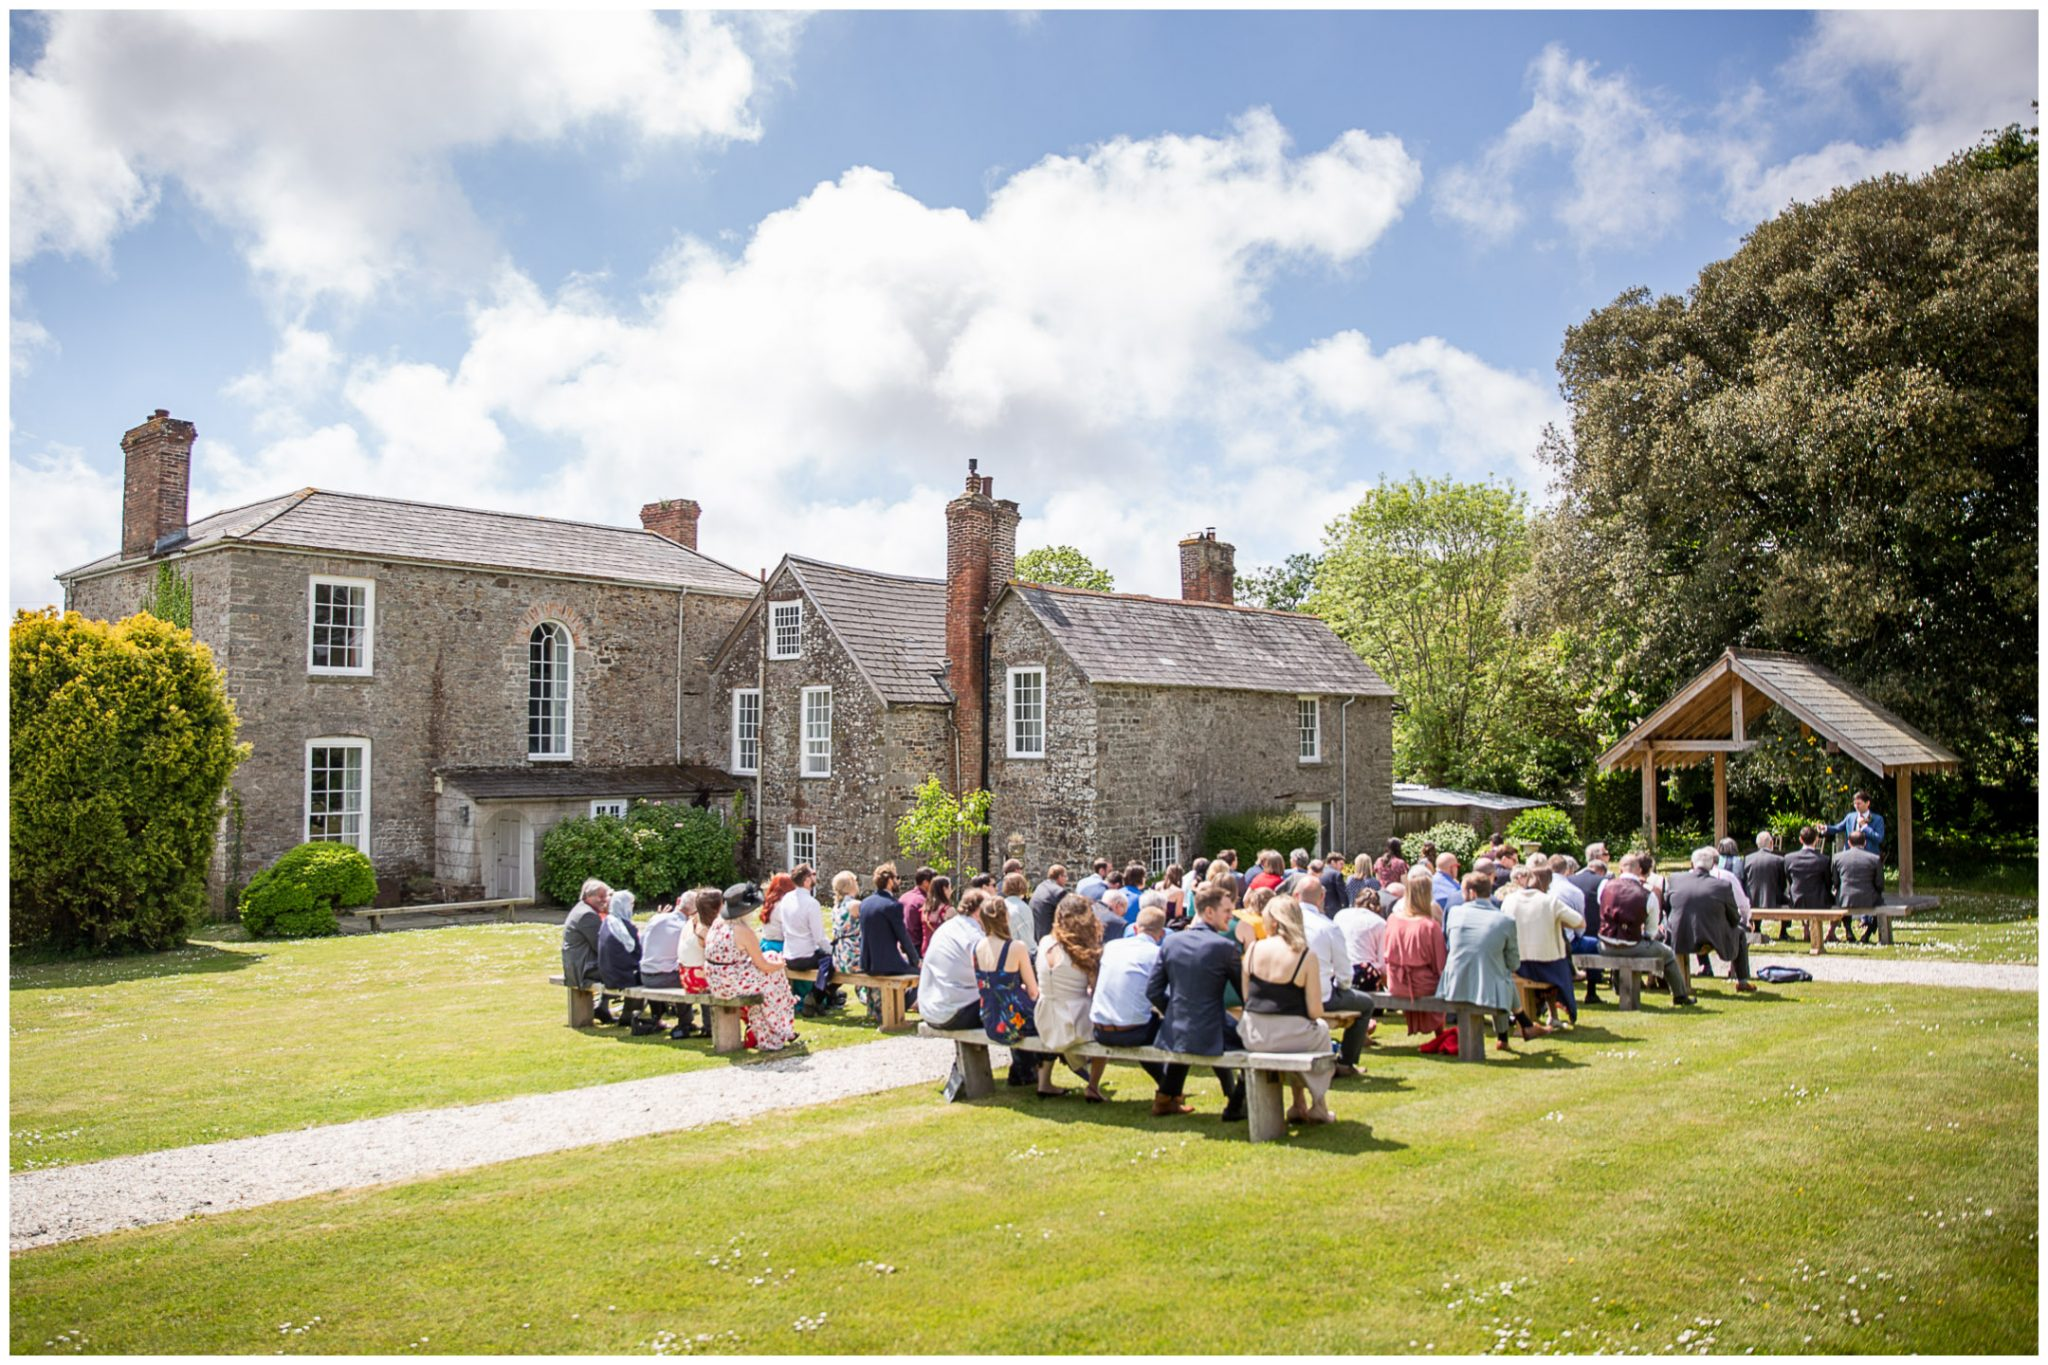 Outdoor ceremony seating in gardens of farmhouse on sunny day